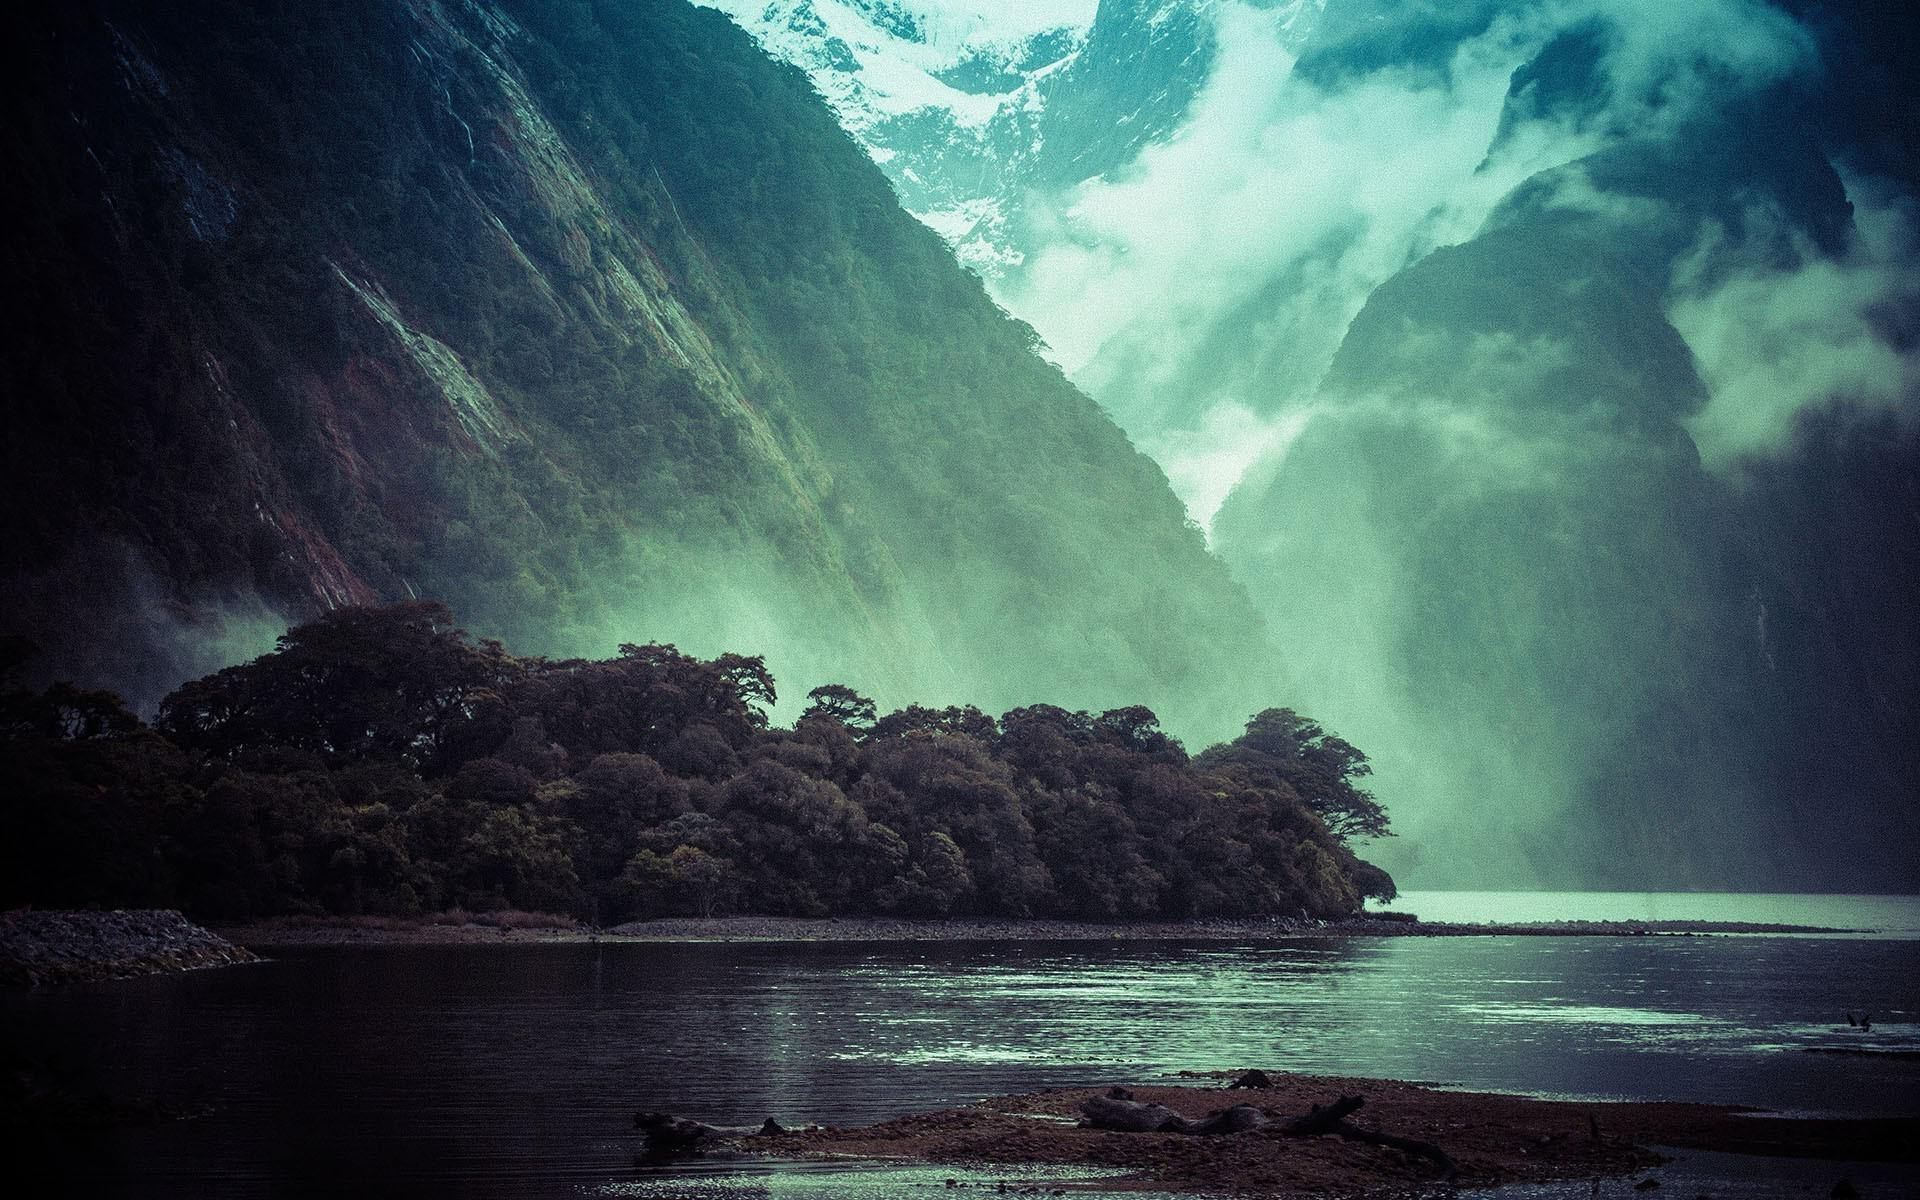 3d Live Waterfall Wallpapers Foggy Fjord Wallpaper Nature And Landscape Wallpaper